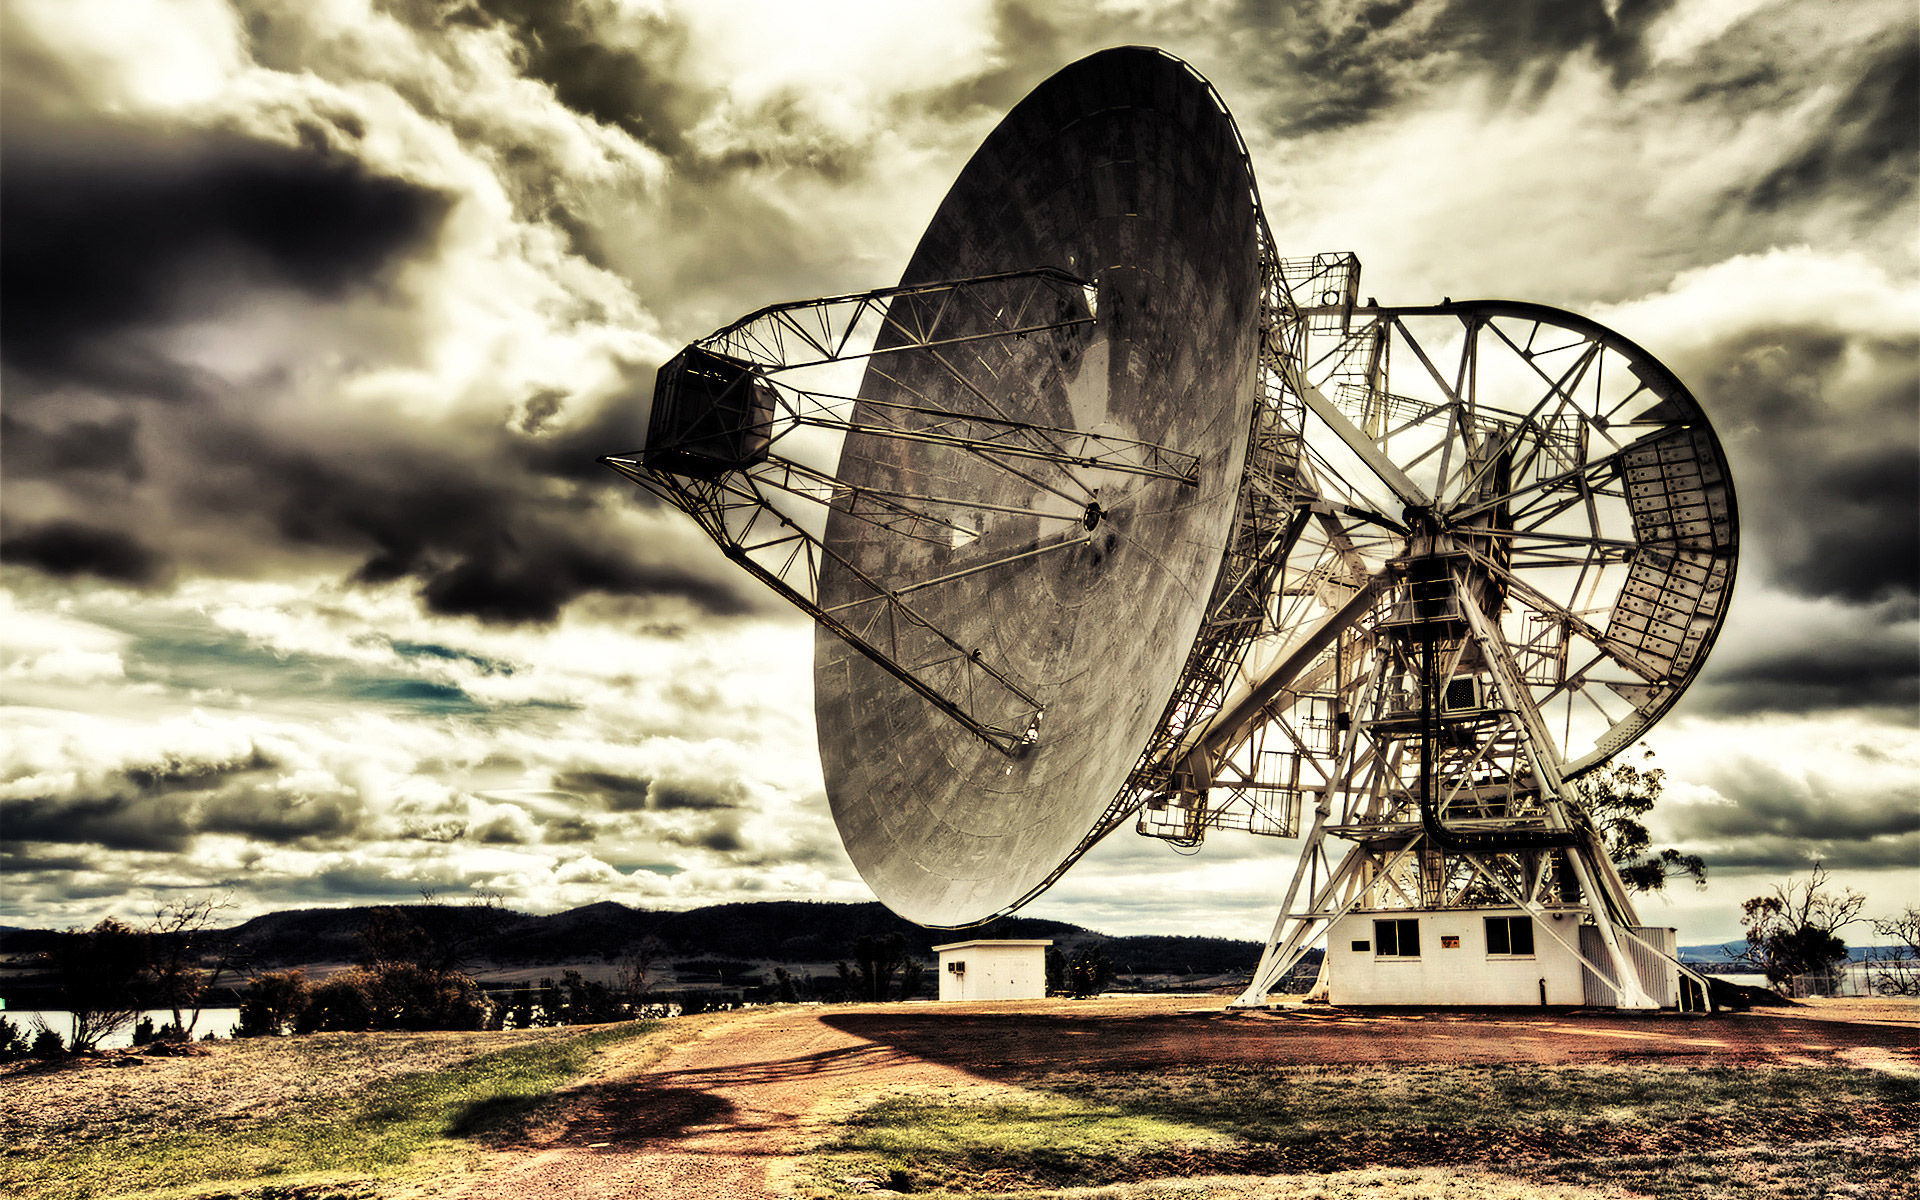 The giant satellite dish for space research